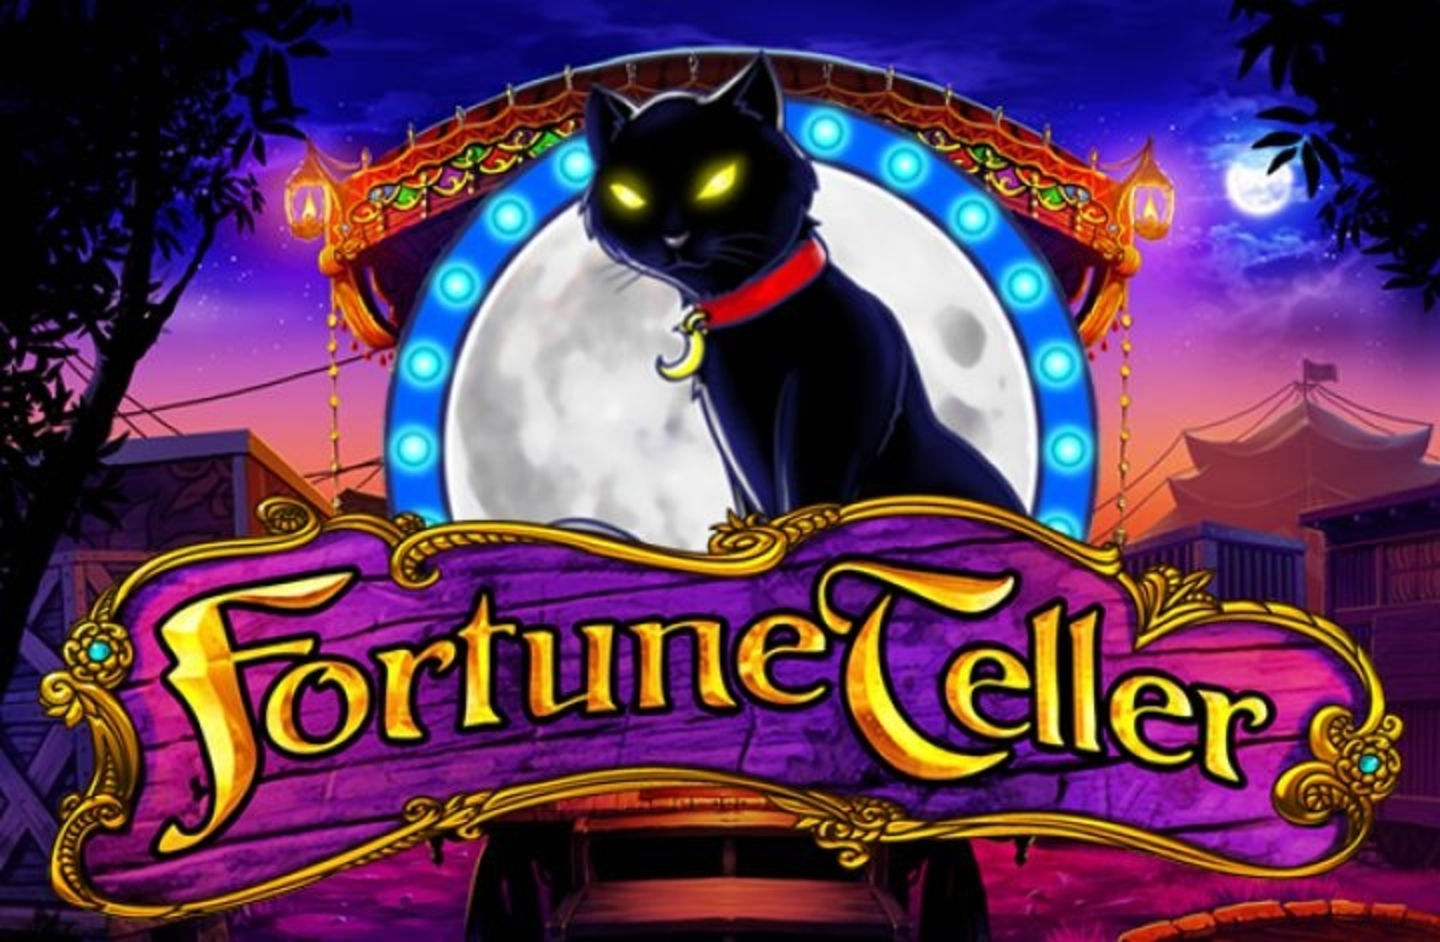 Fortune Teller (Play'n Go) Online Slot Demo Game by Playn GO